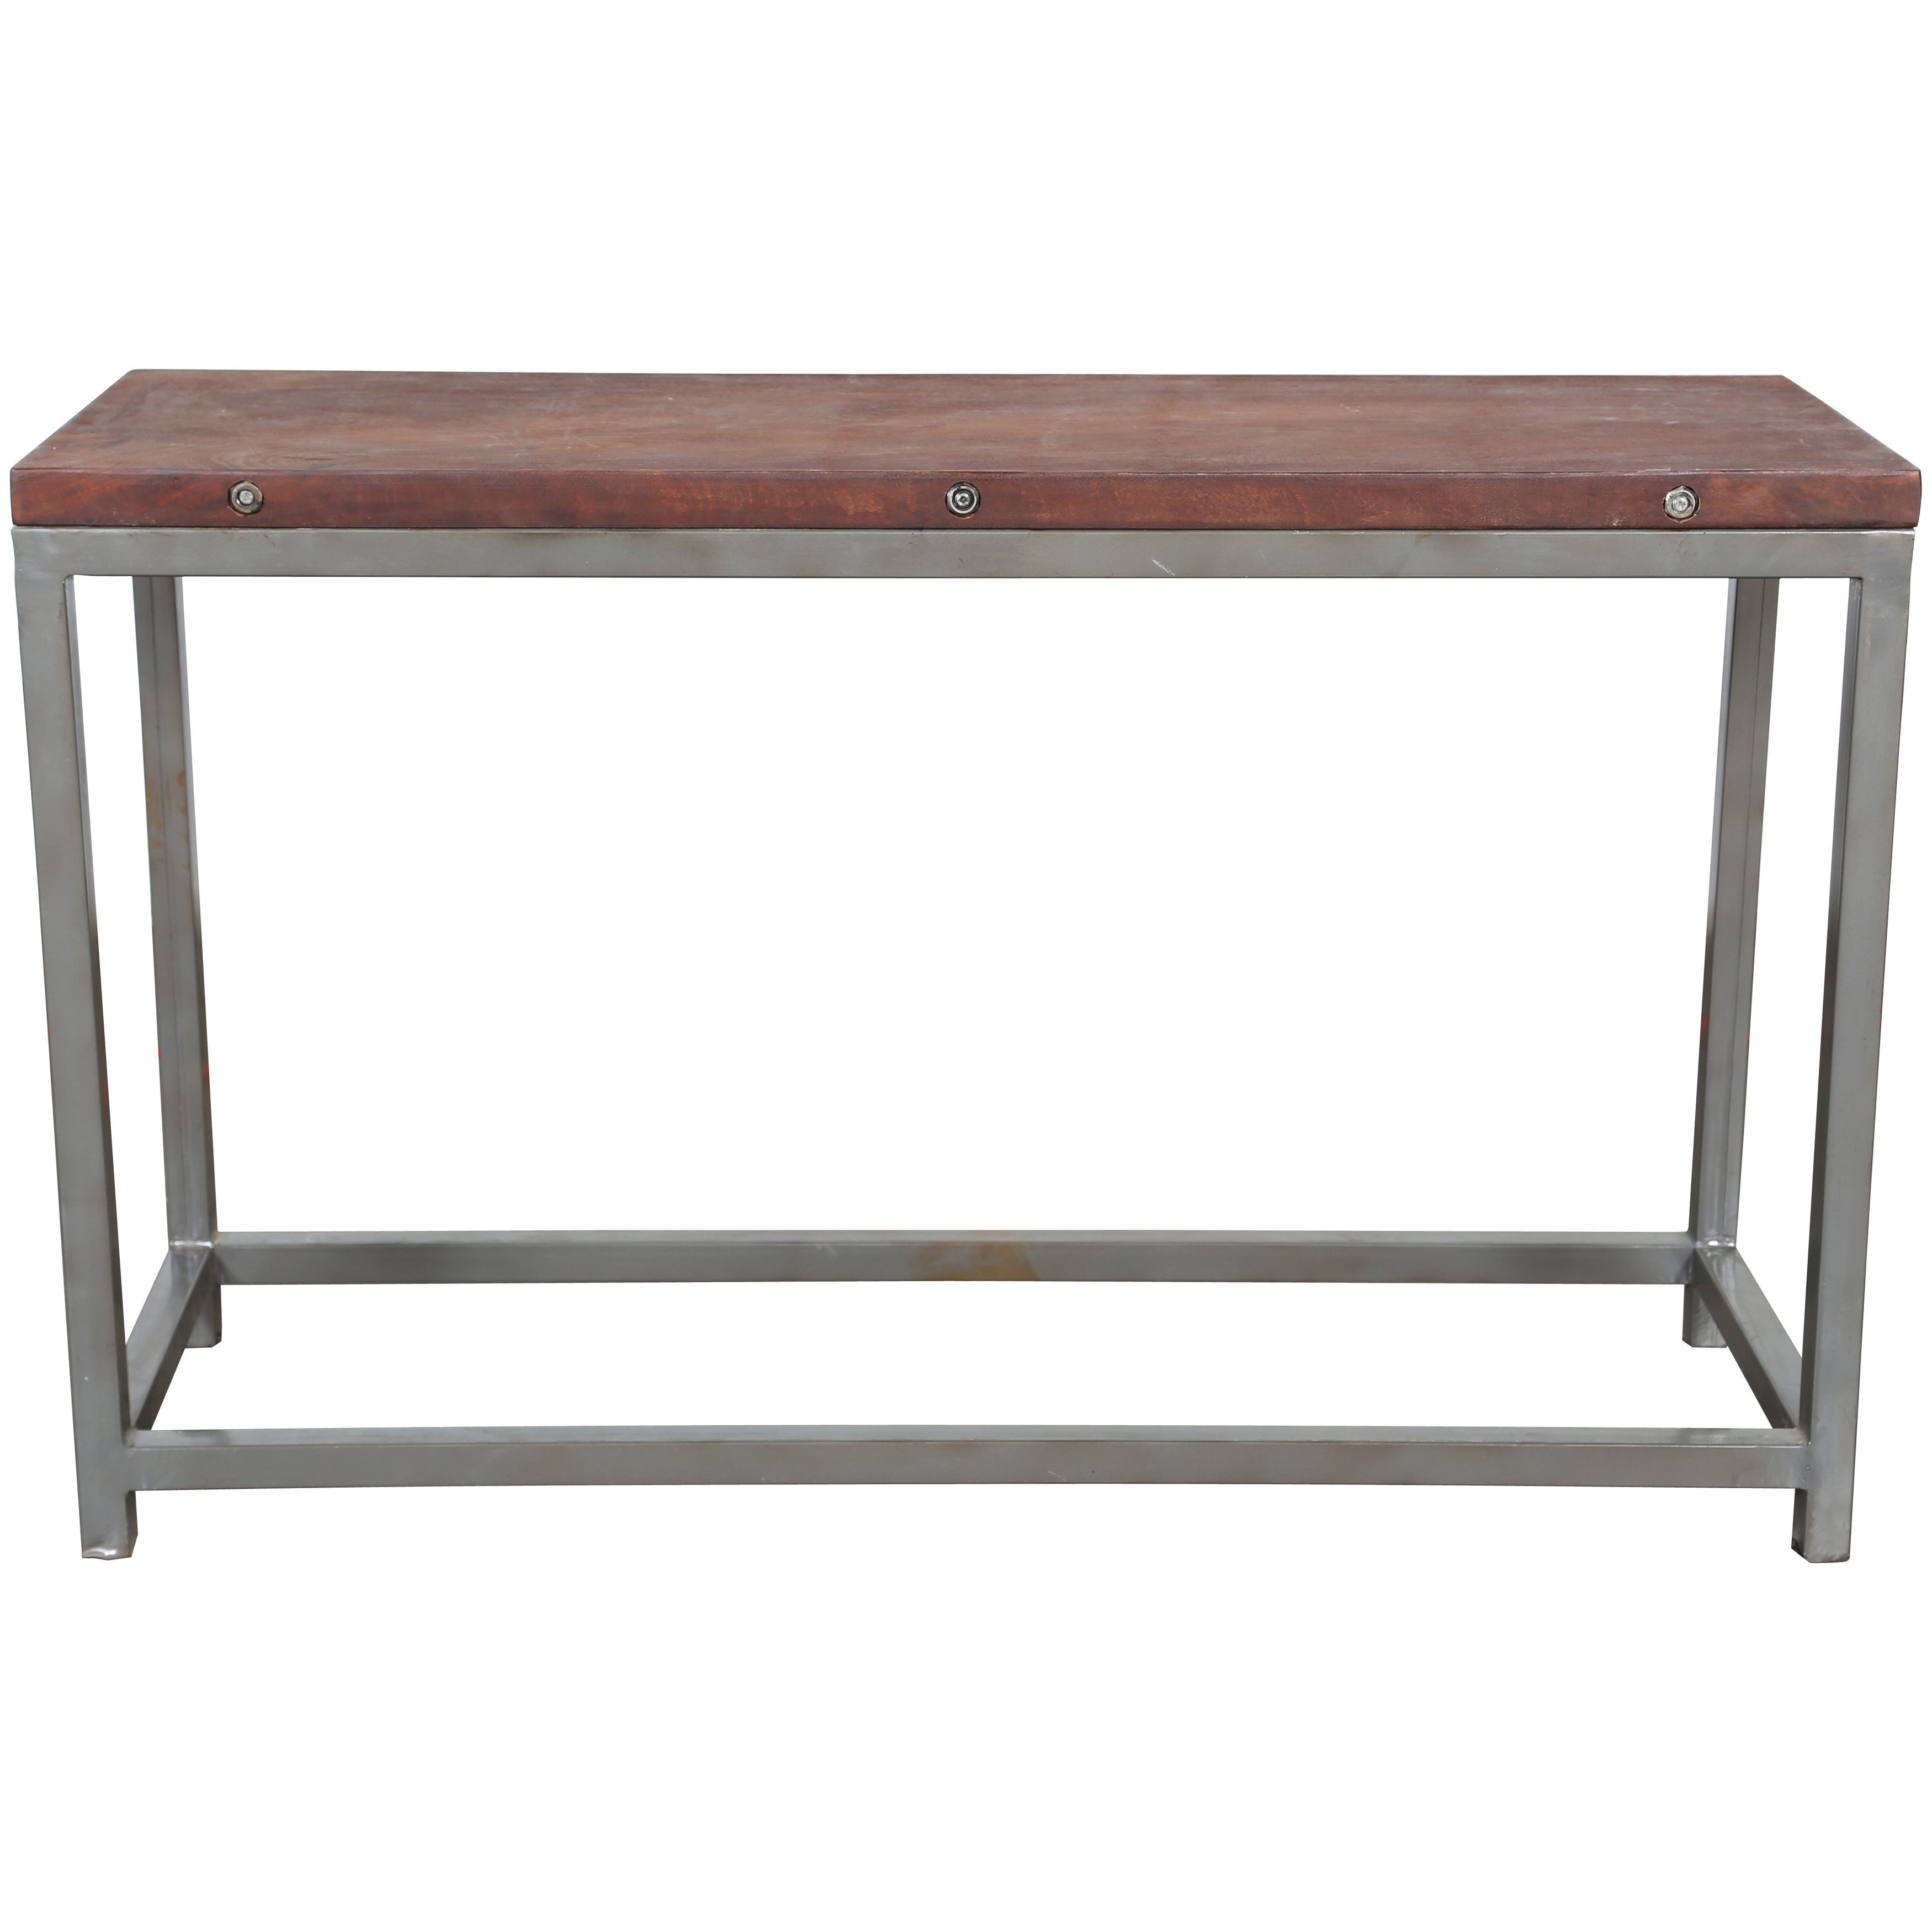 Handmade Wanderloot Reclaimed Wood Console Table With Grey Metal Frame India Free Shipping Today 11319374